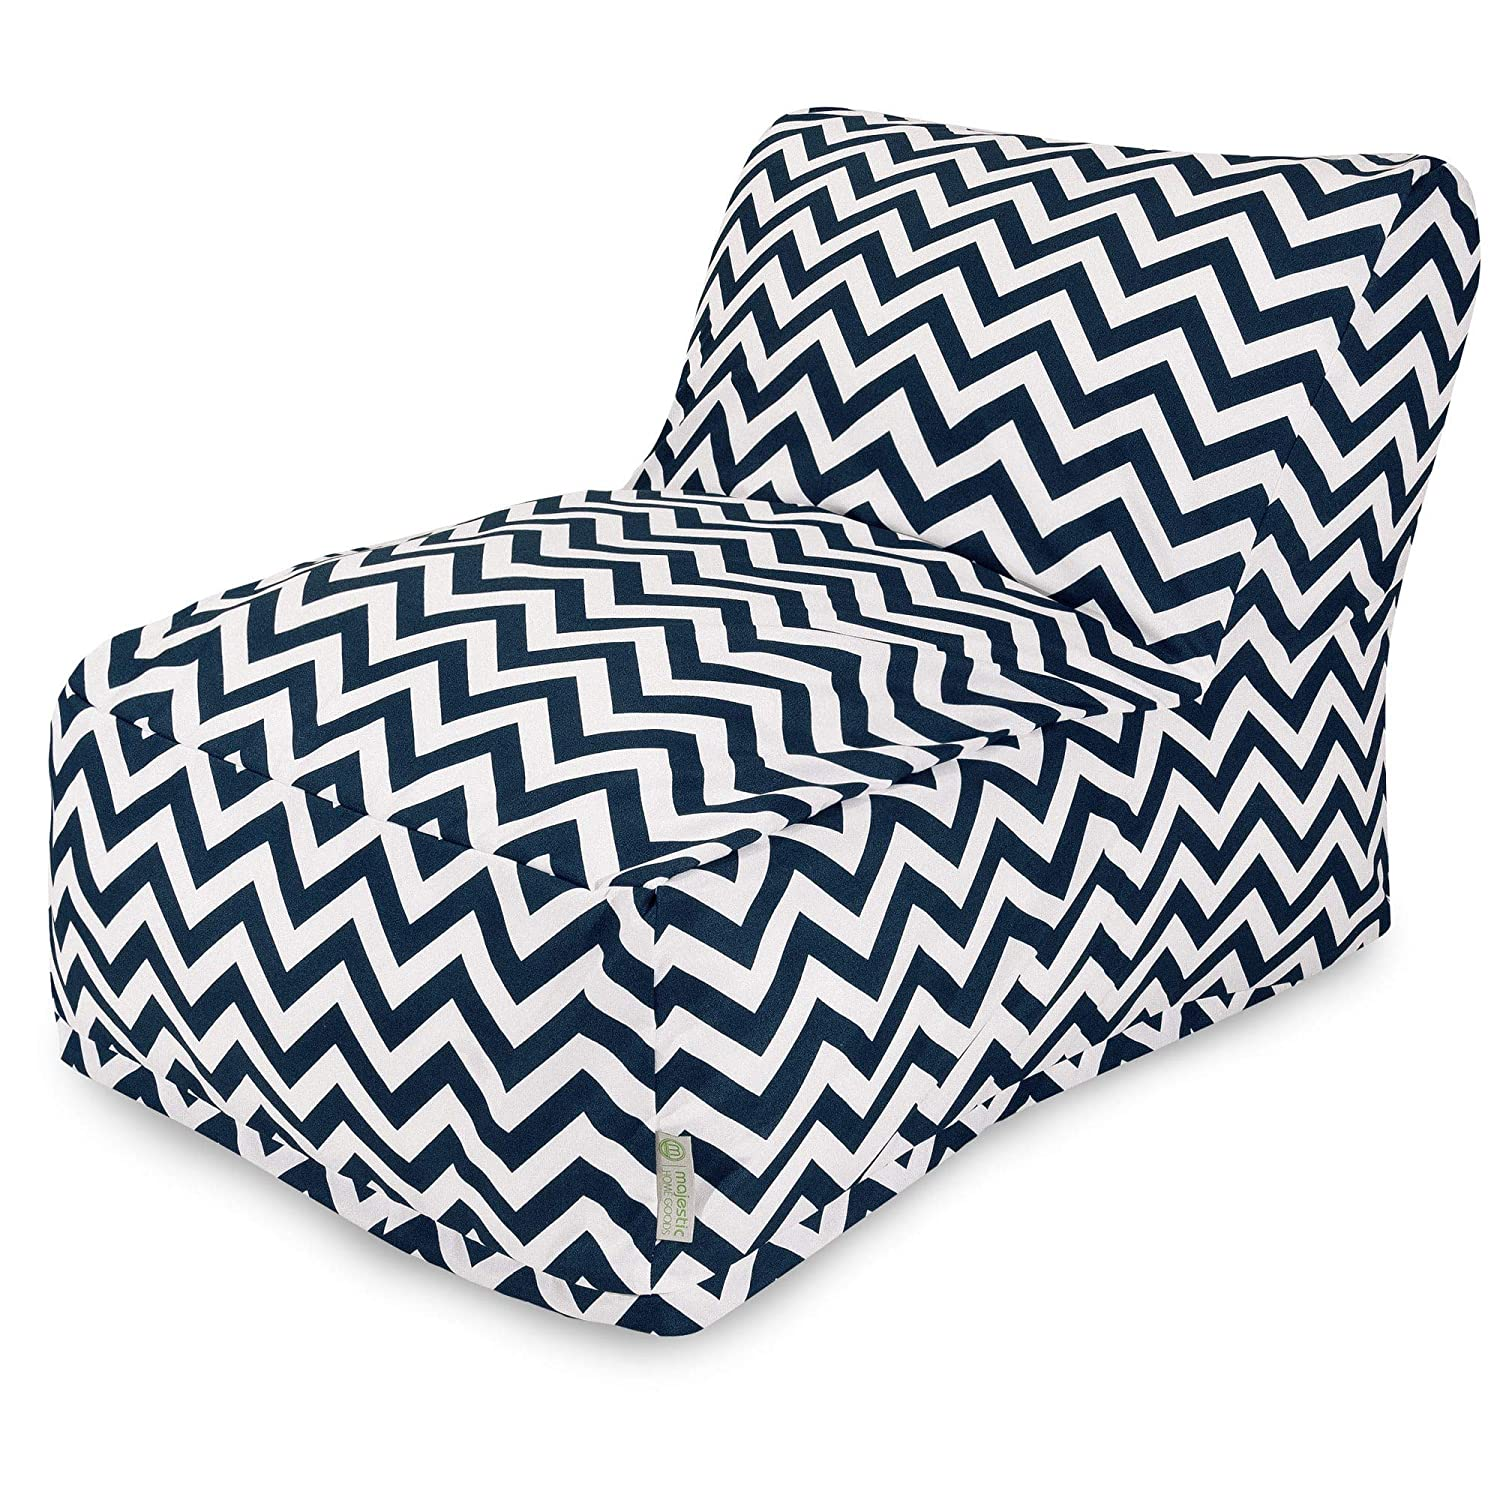 Terrific Majestic Home Goods Chevron Bean Bag Chair Lounger Navy Machost Co Dining Chair Design Ideas Machostcouk